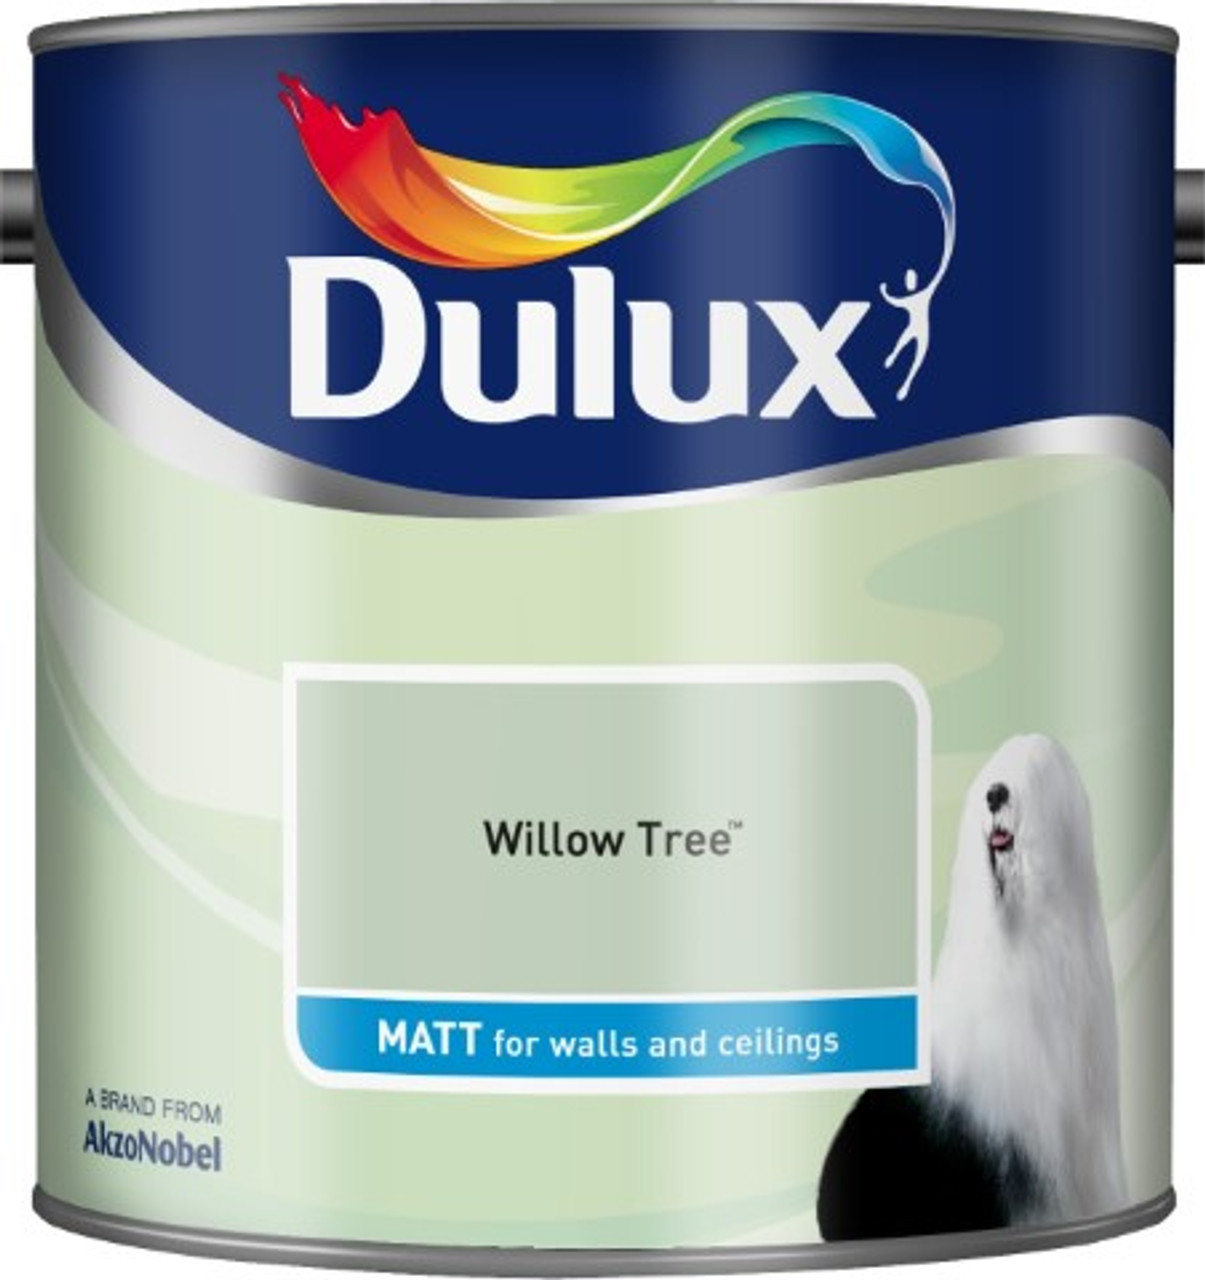 2.5L Dulux Matt Emulsion Willow Tree